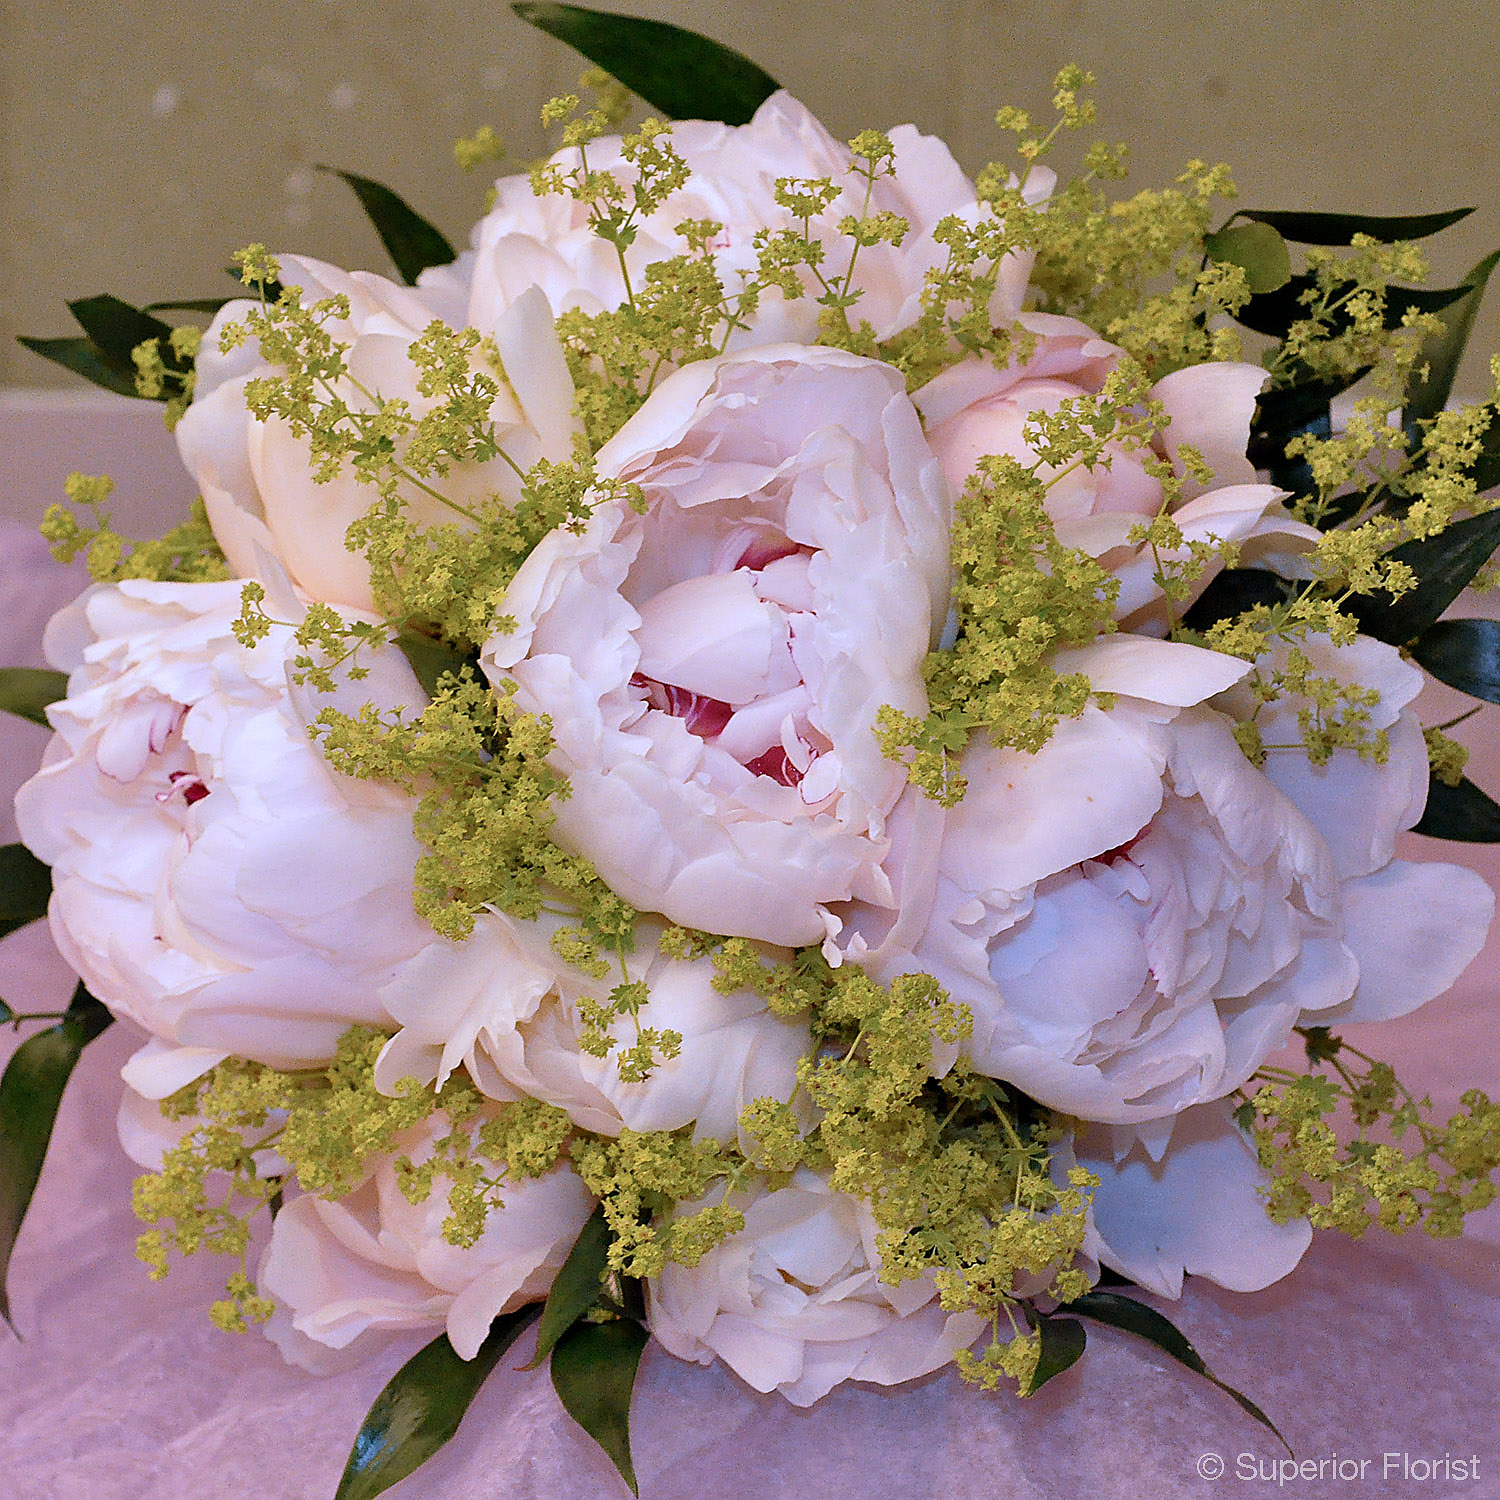 Superior Florist – Weddings – Personal Flowers: Hand tied bouquet of Festiva Maxima Peonies, lady's mantle, Italian Ruscus.